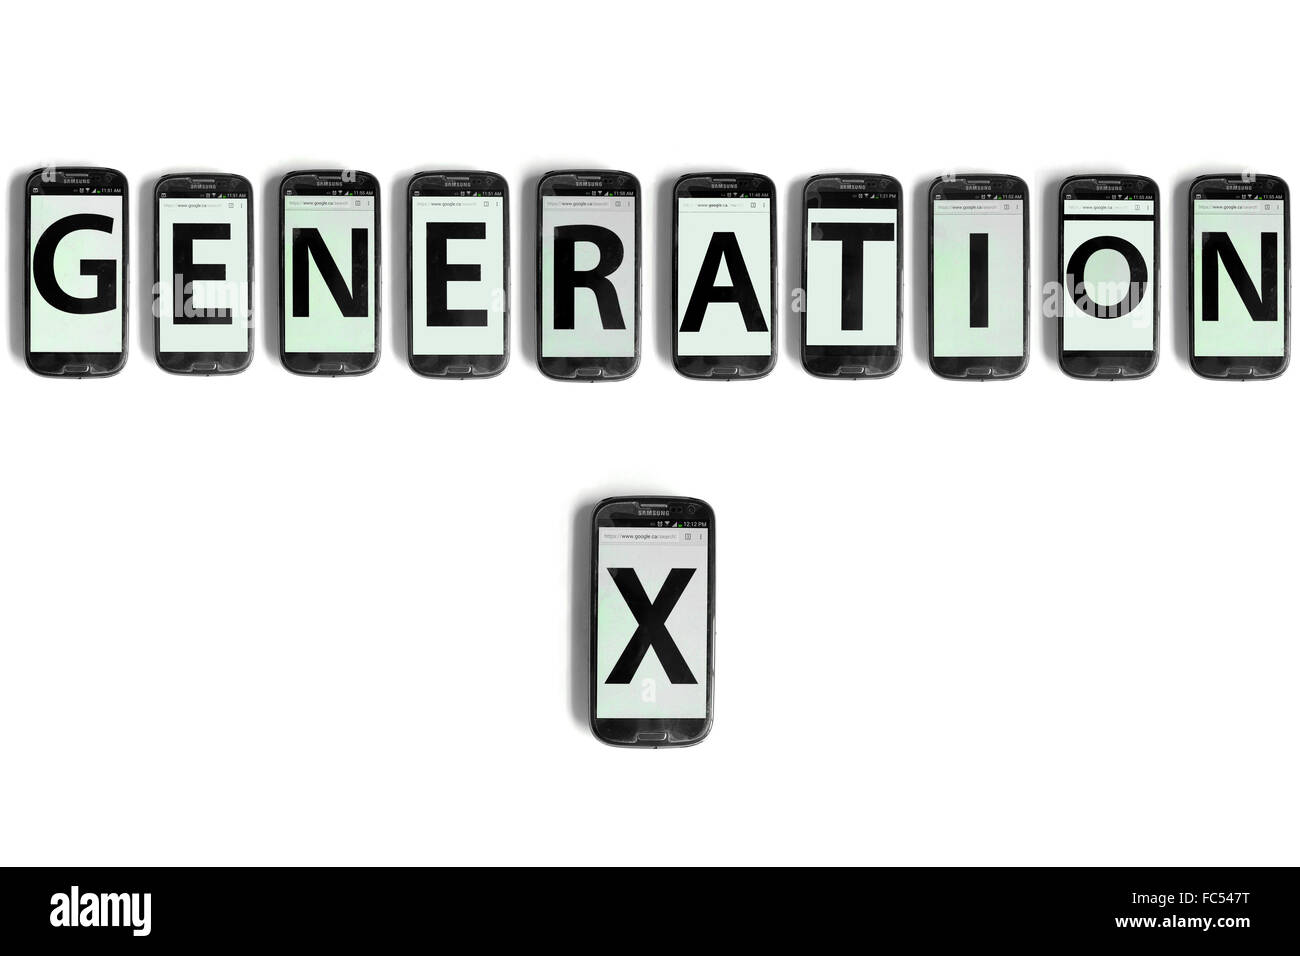 Generation X written on the screens of smartphones photographed against a white background. - Stock Image